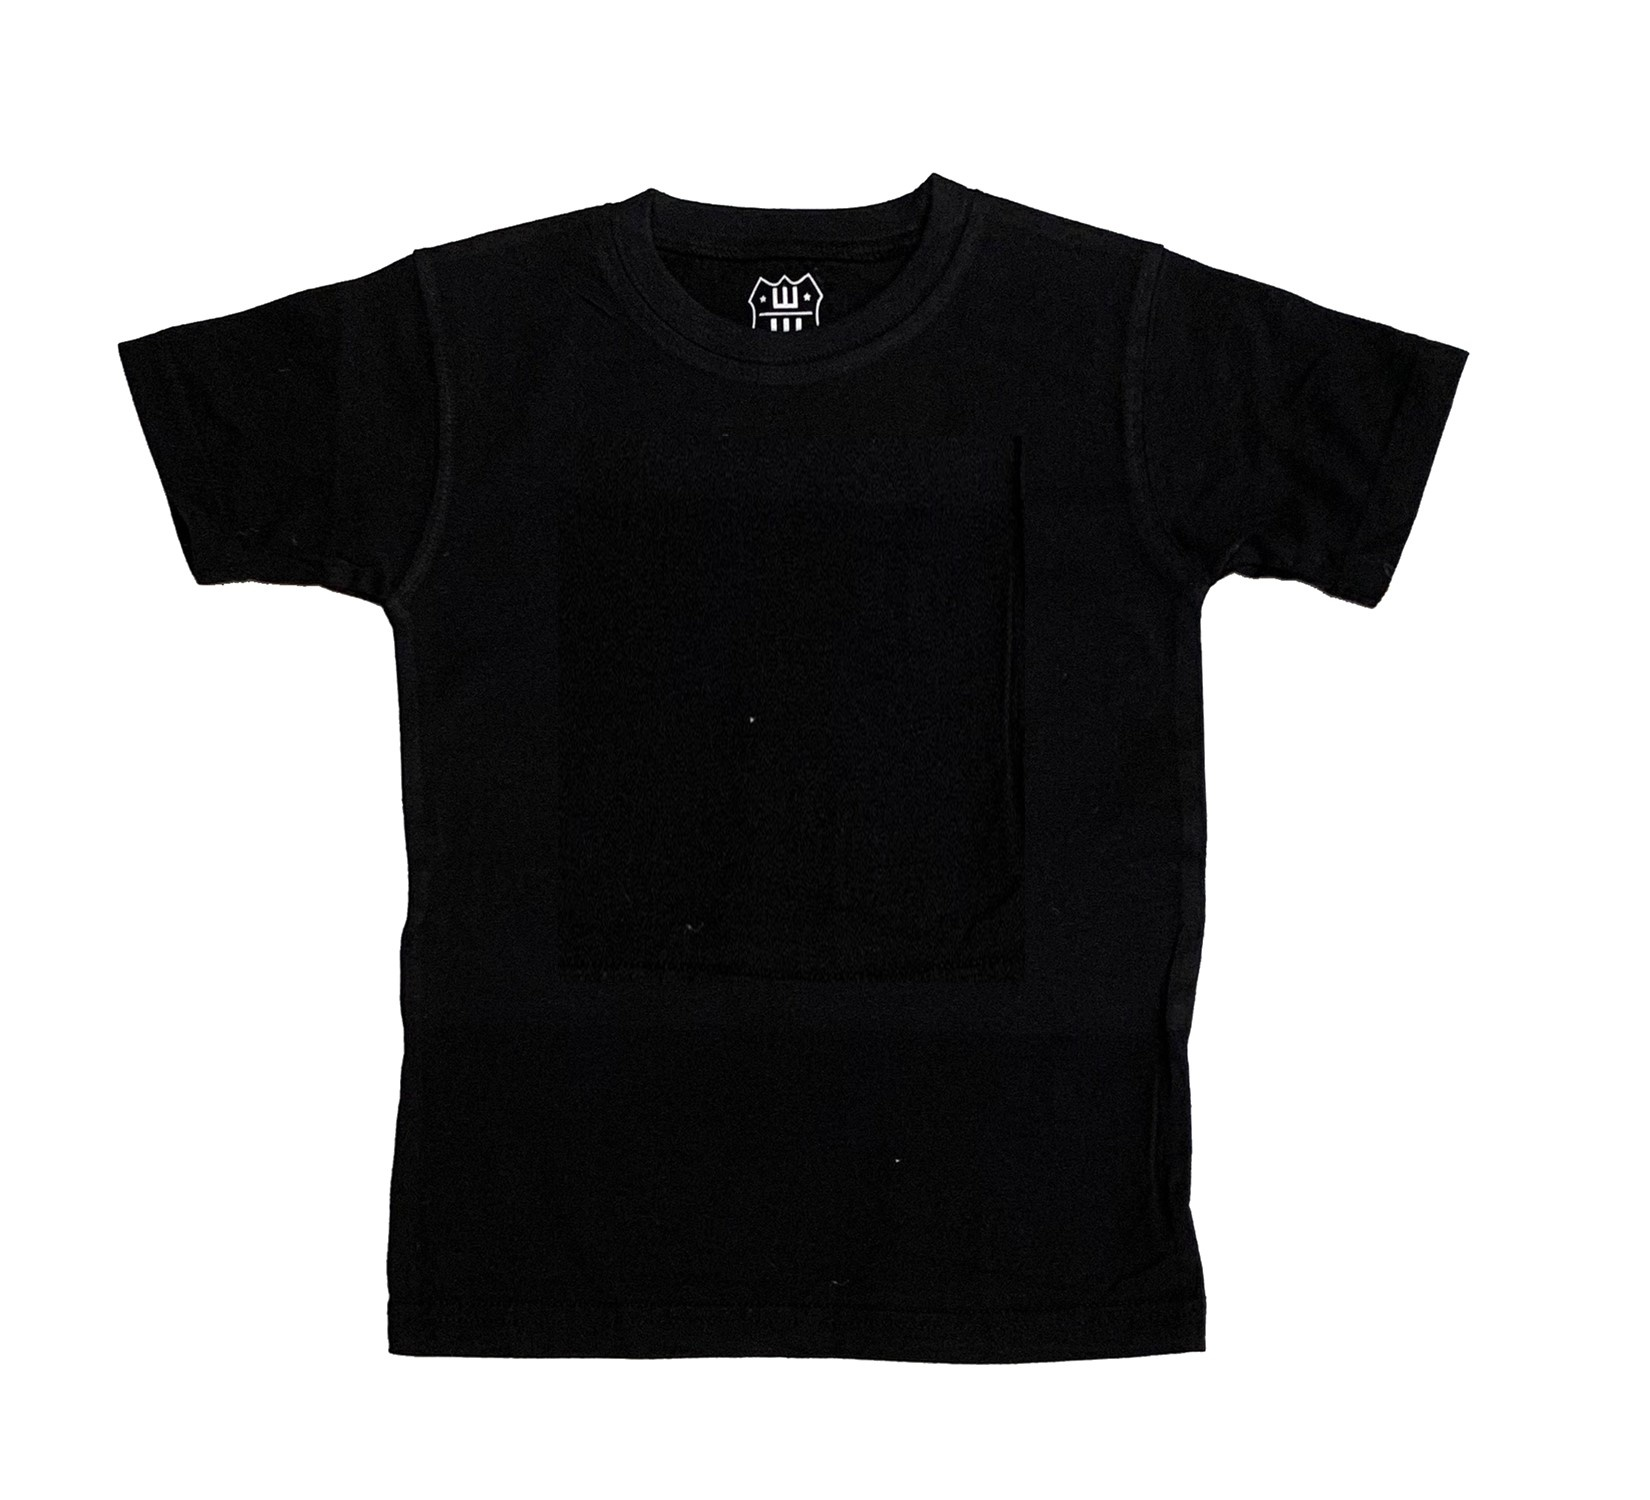 Wes & Willy Black Tee